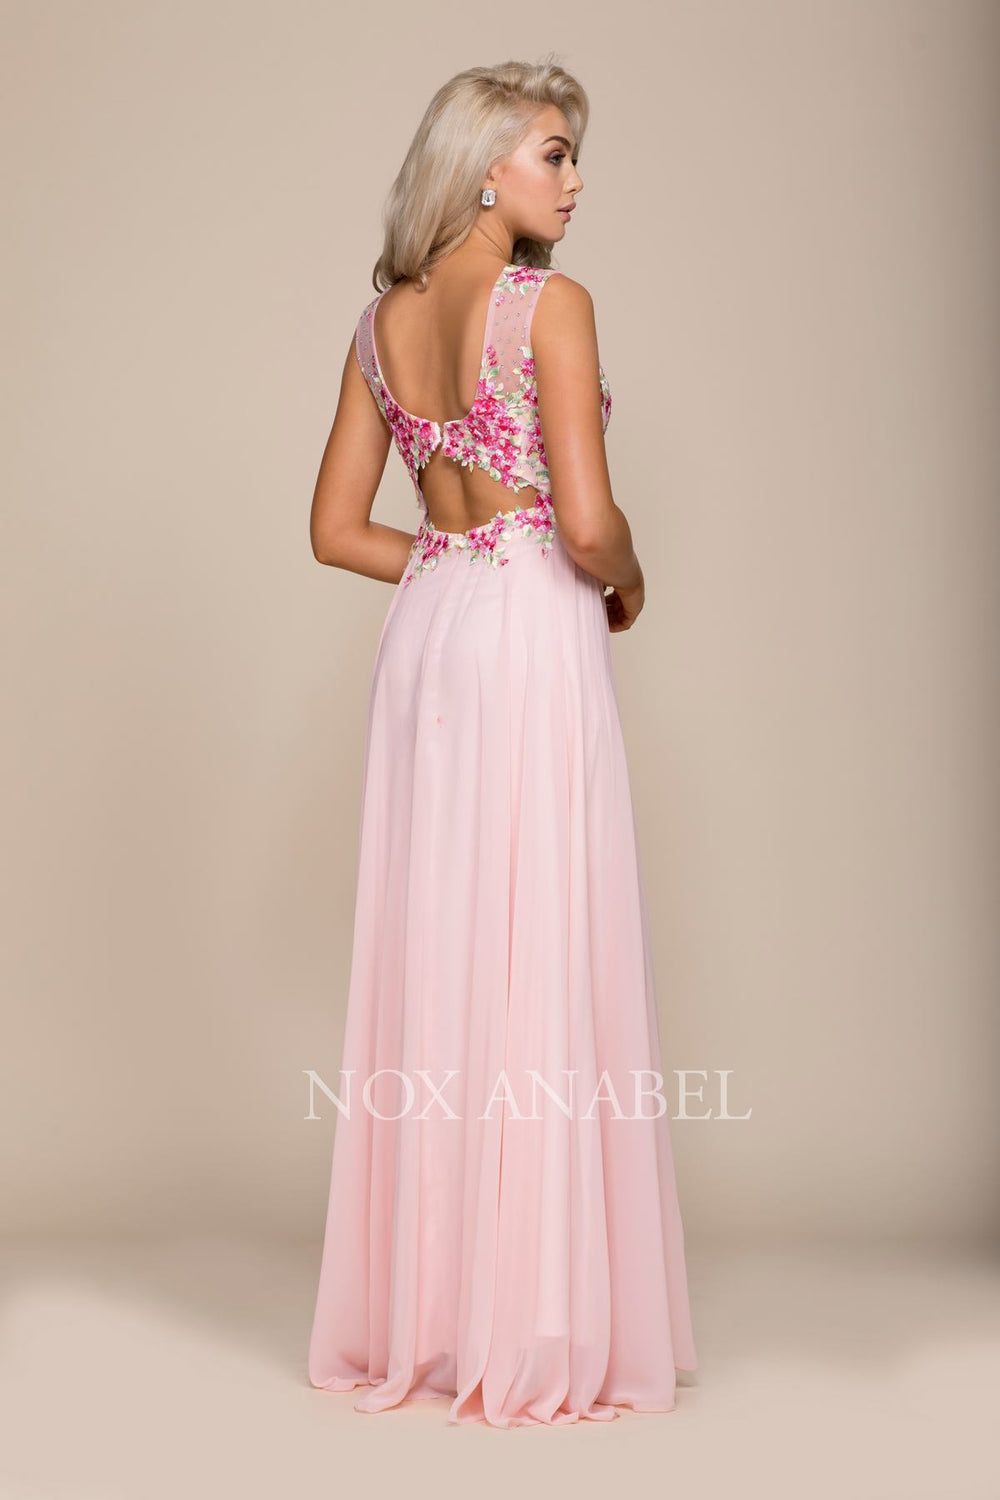 FORMAL FLORAL A LINE BALL GOWN